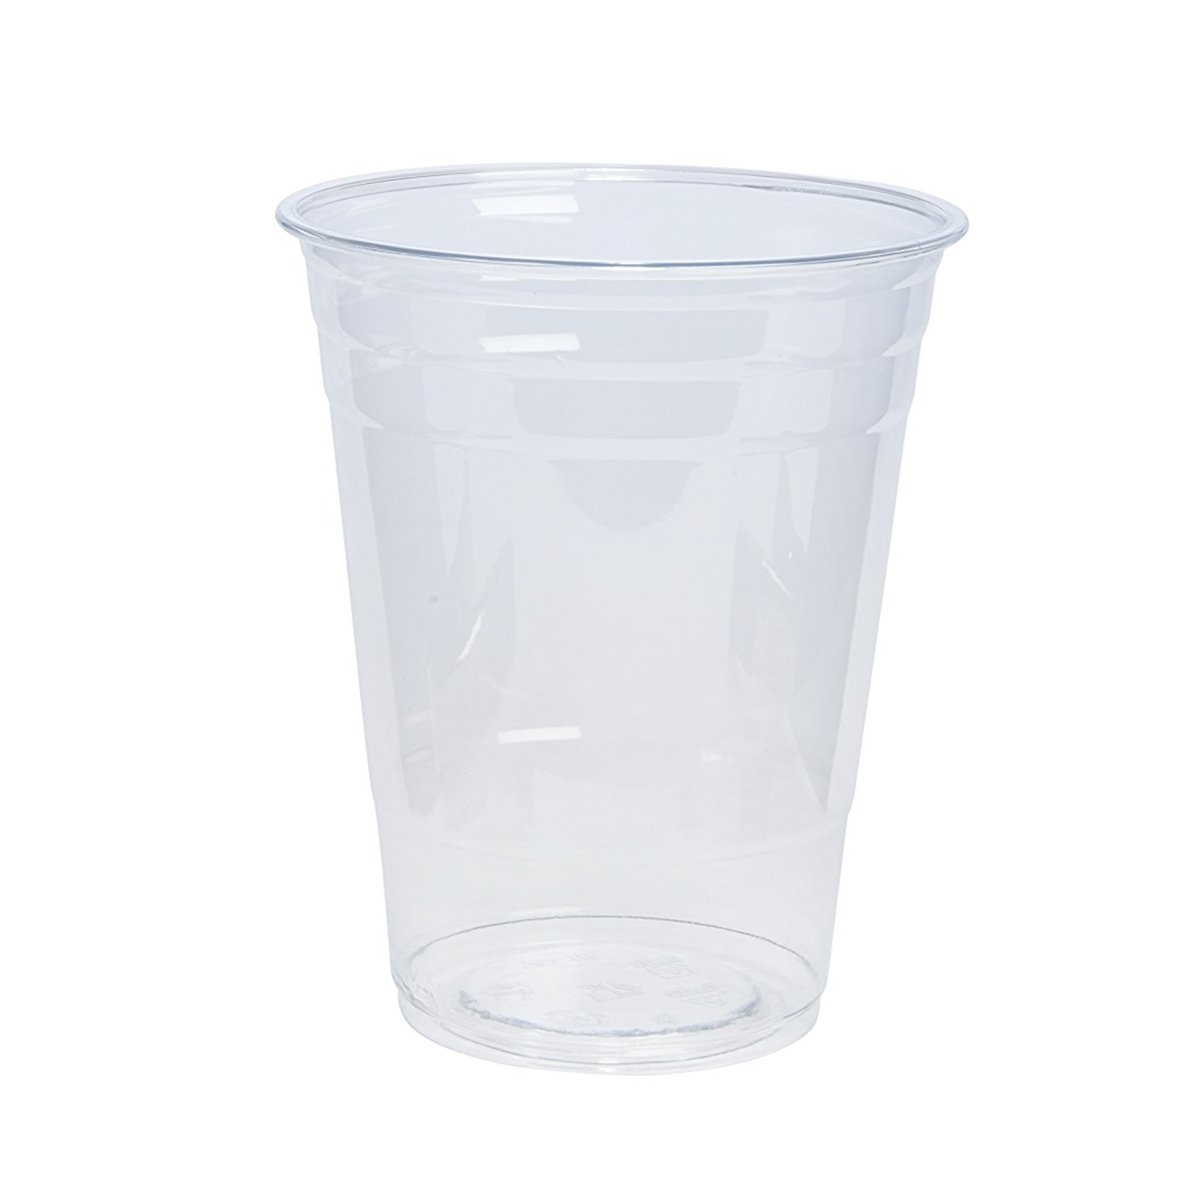 100 Sets 16 oz. Plastic CRYSTAL CLEAR Cups with Flat Lids [by COMFY PACKAGE] for Cold Drinks, Iced Coffee, Bubble Boba, Tea, Smoothie etc. by Comfy Package (Image #2)